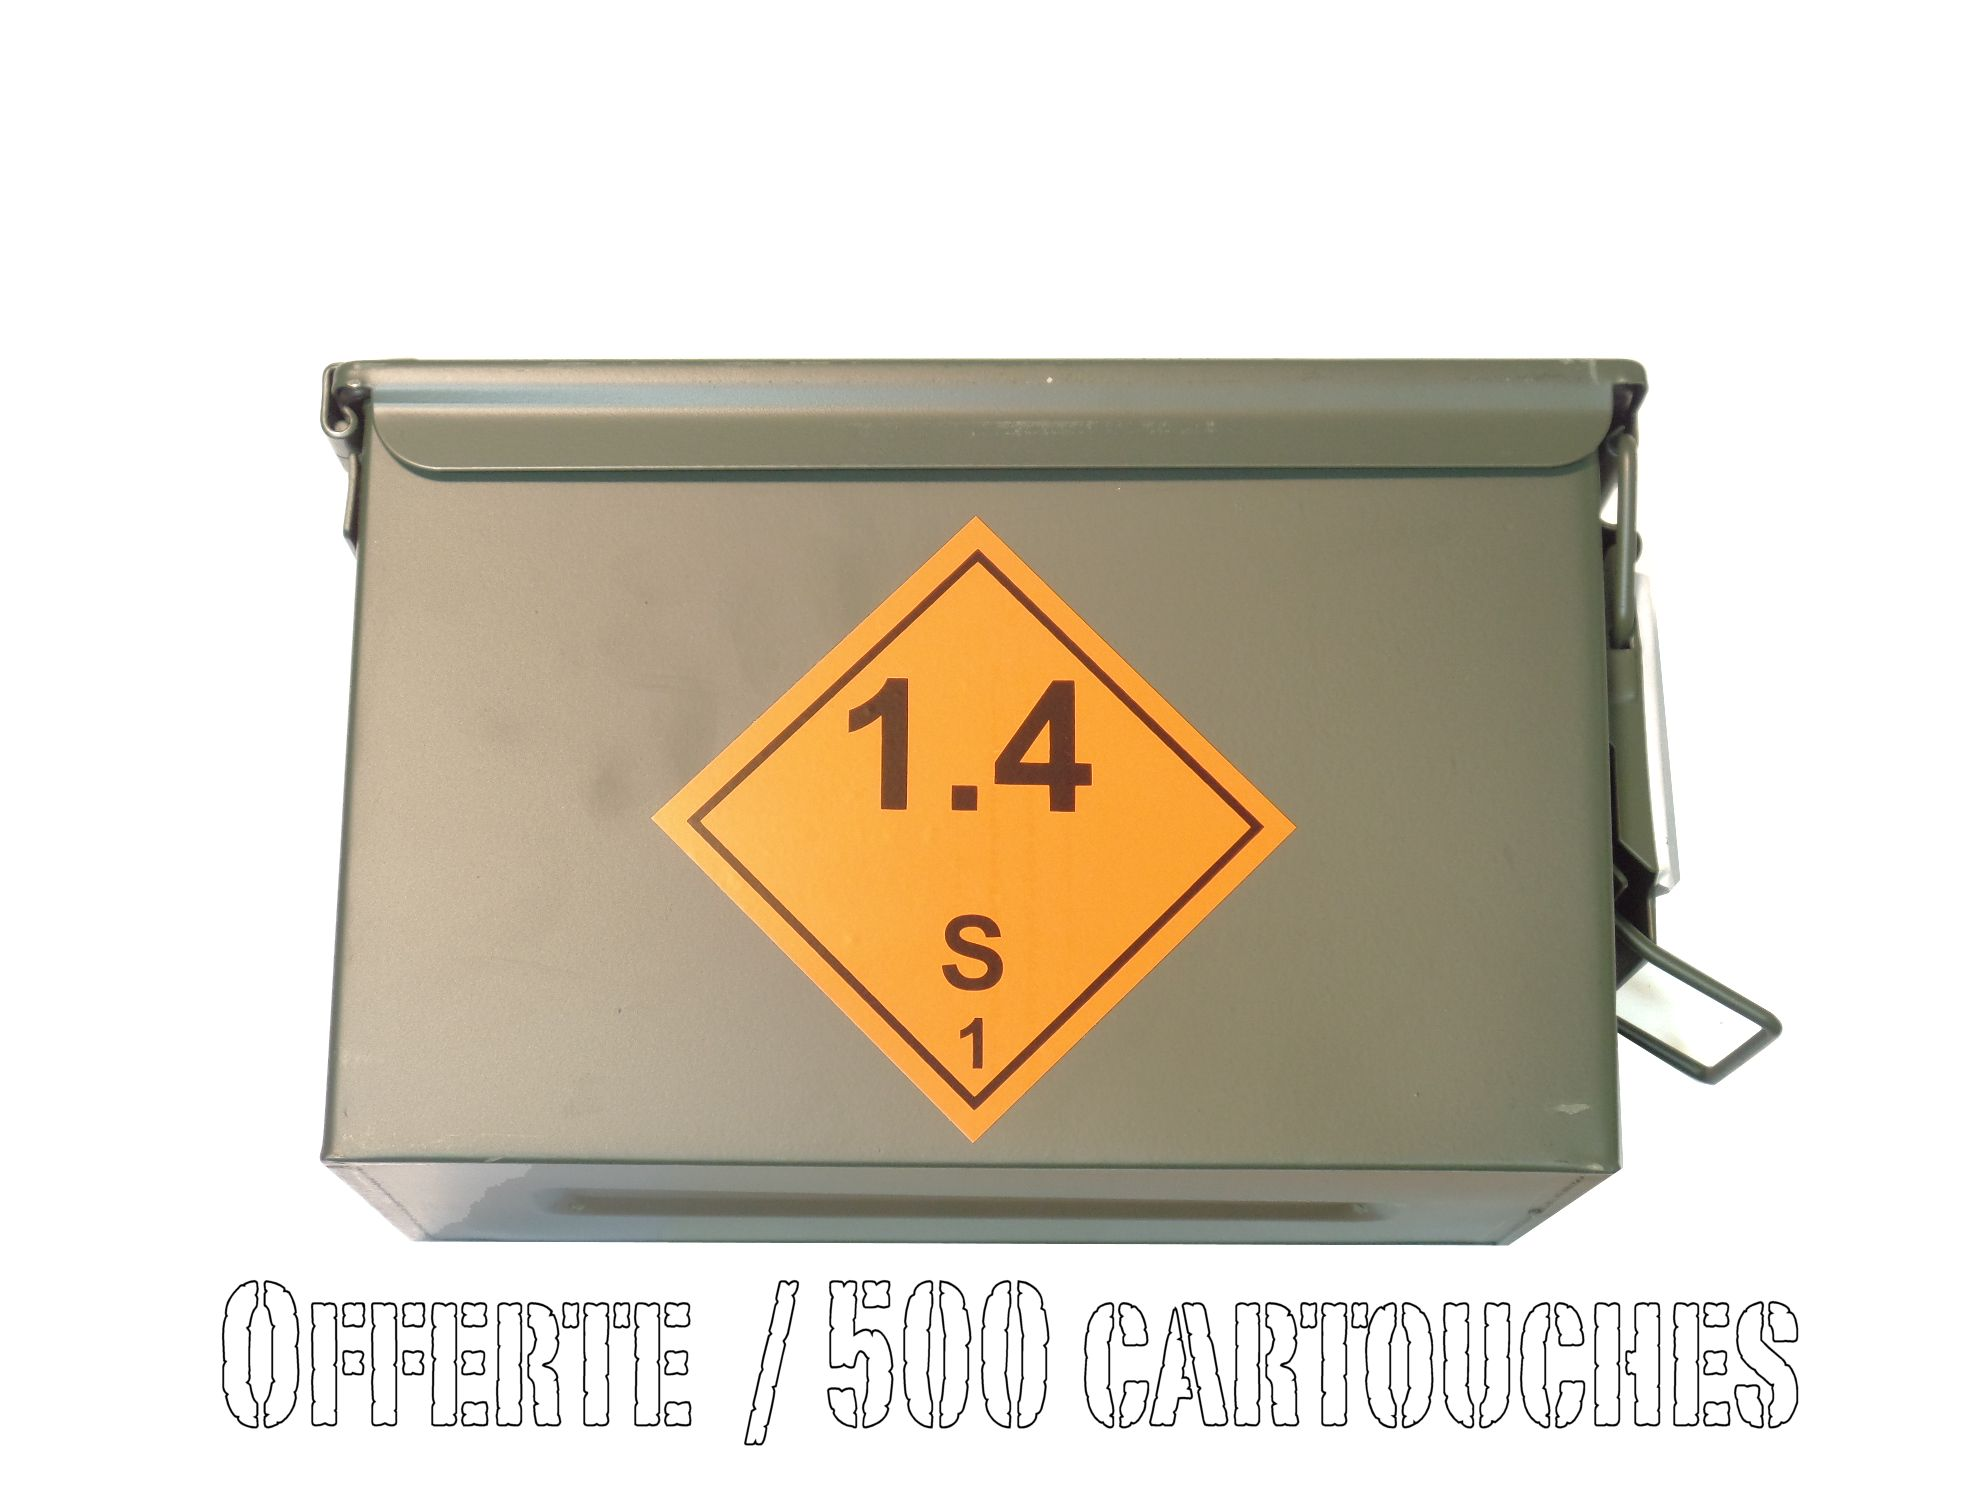 MUNITIONS x250 calibre 7.62x39 SURPLUS